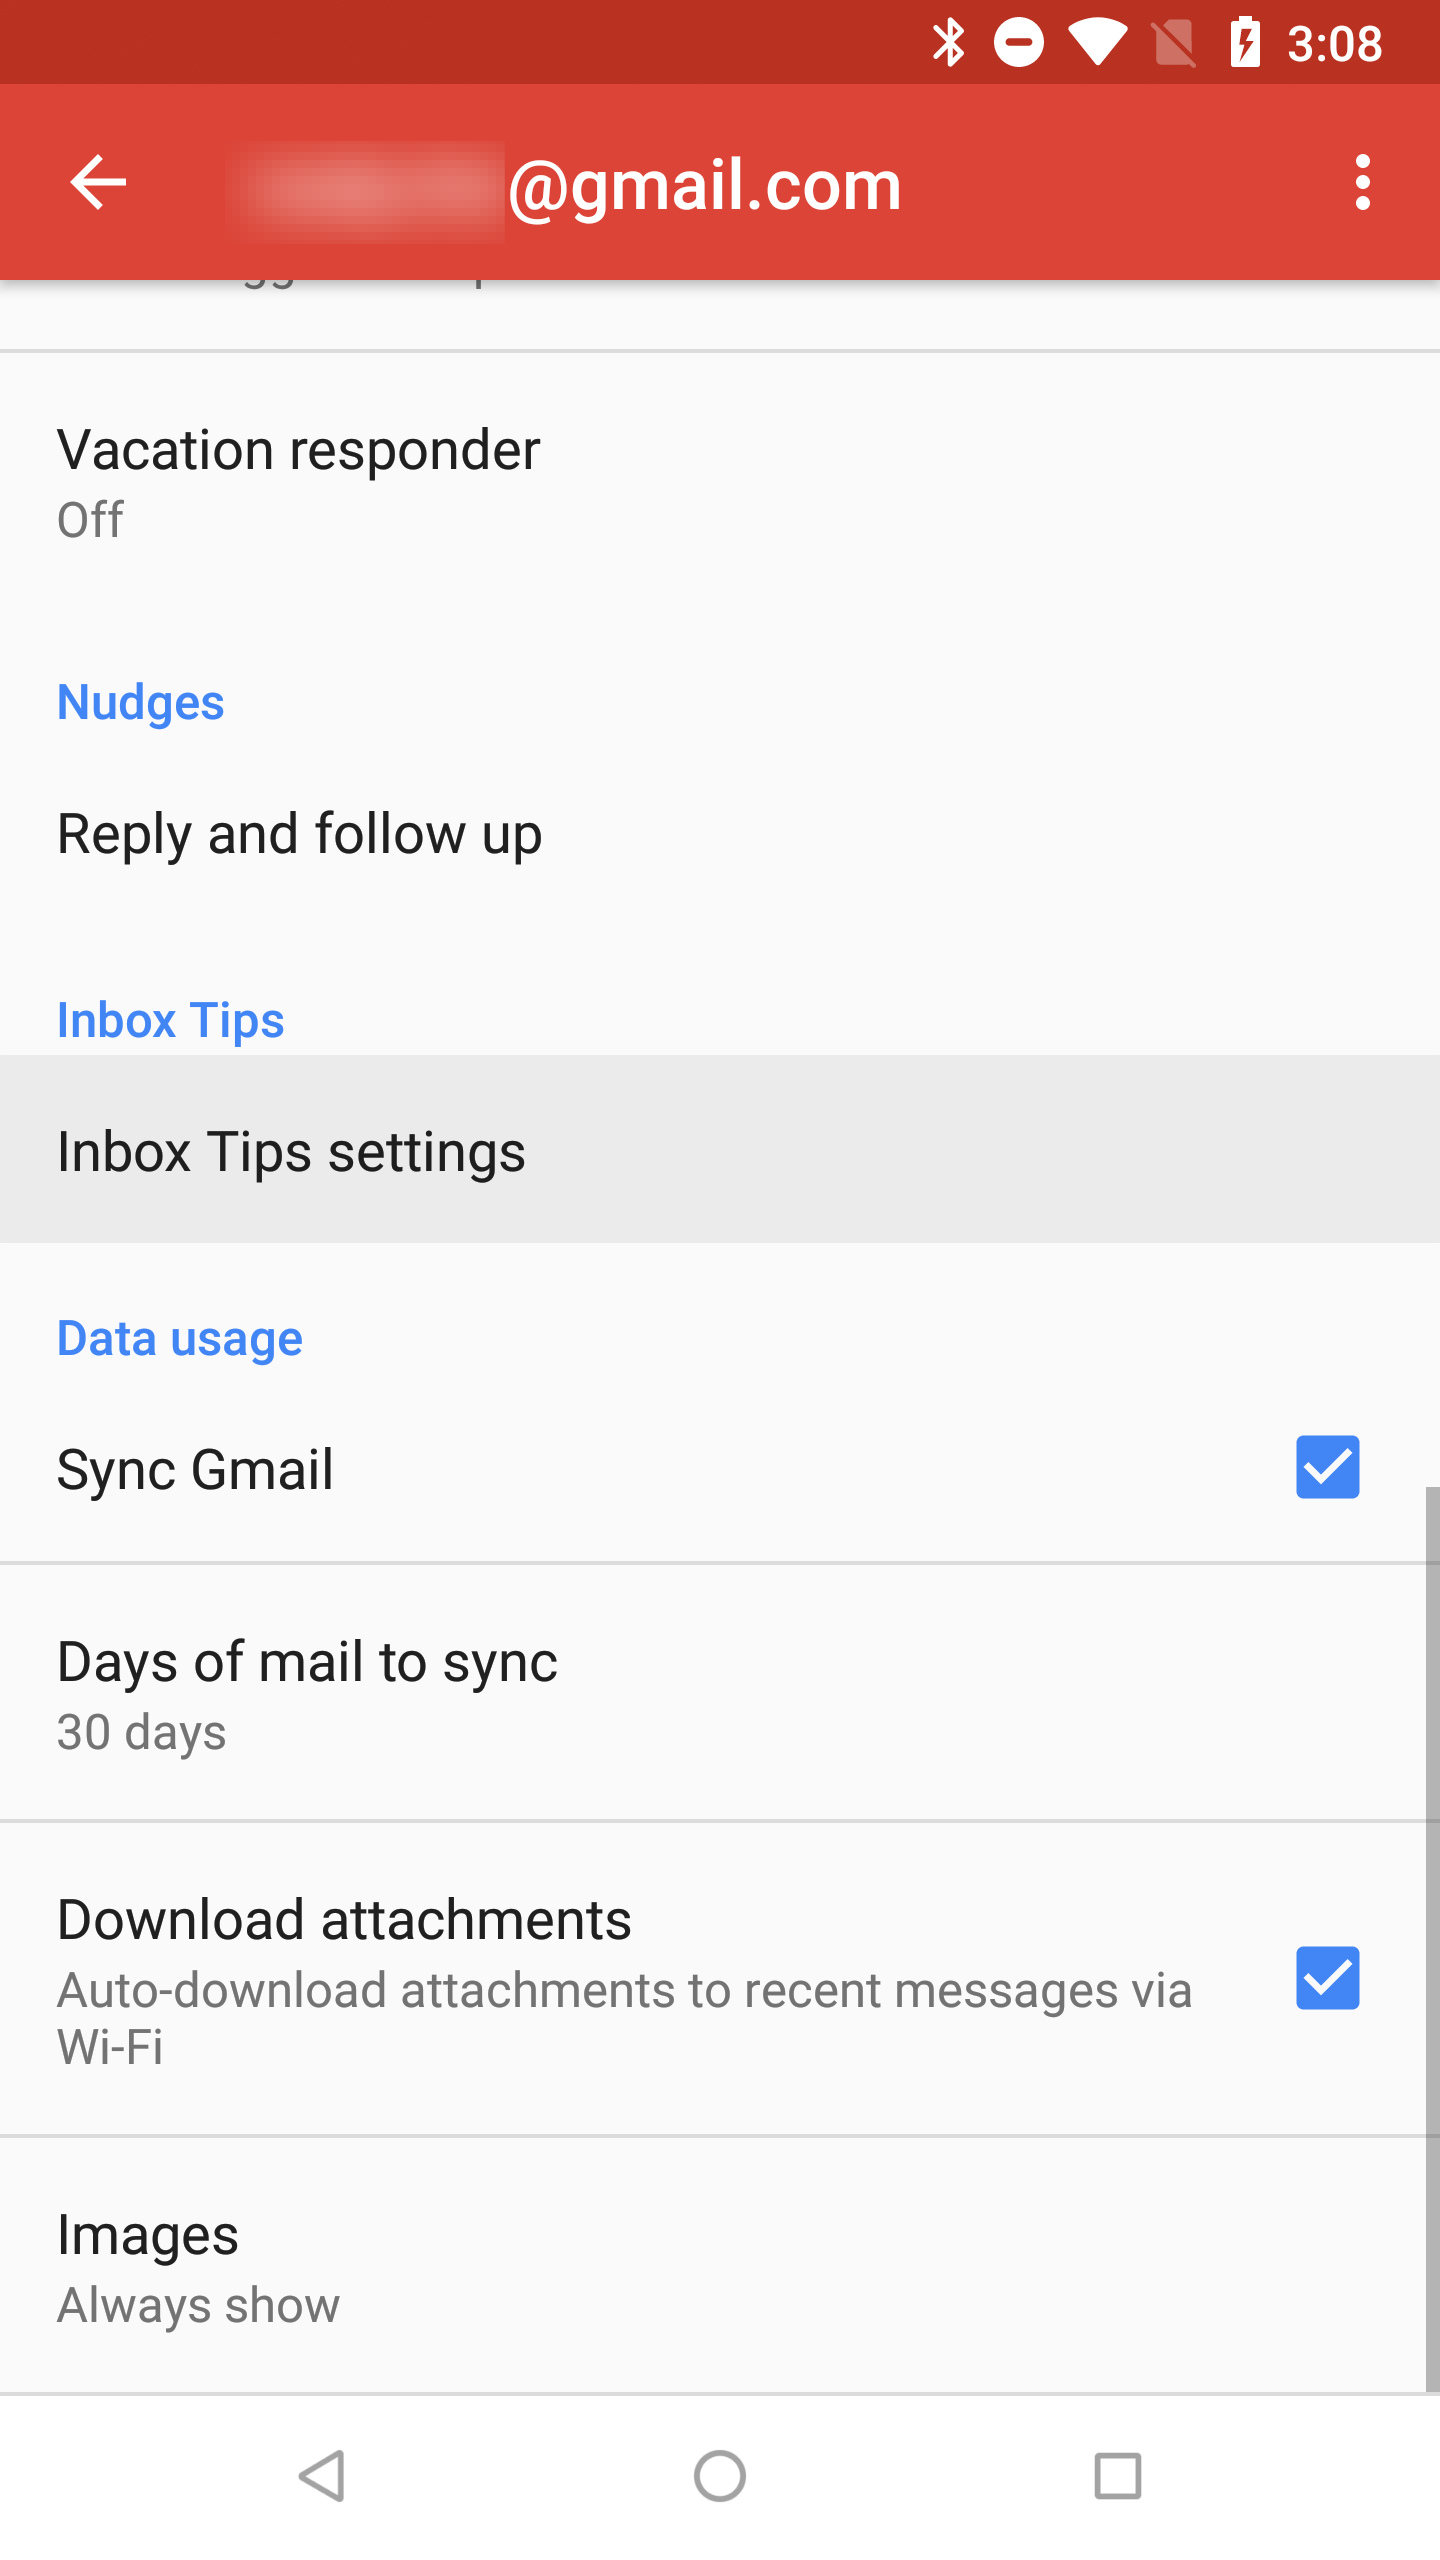 Gmail v8 6 adds unsubscribe tips, prepares priority-based